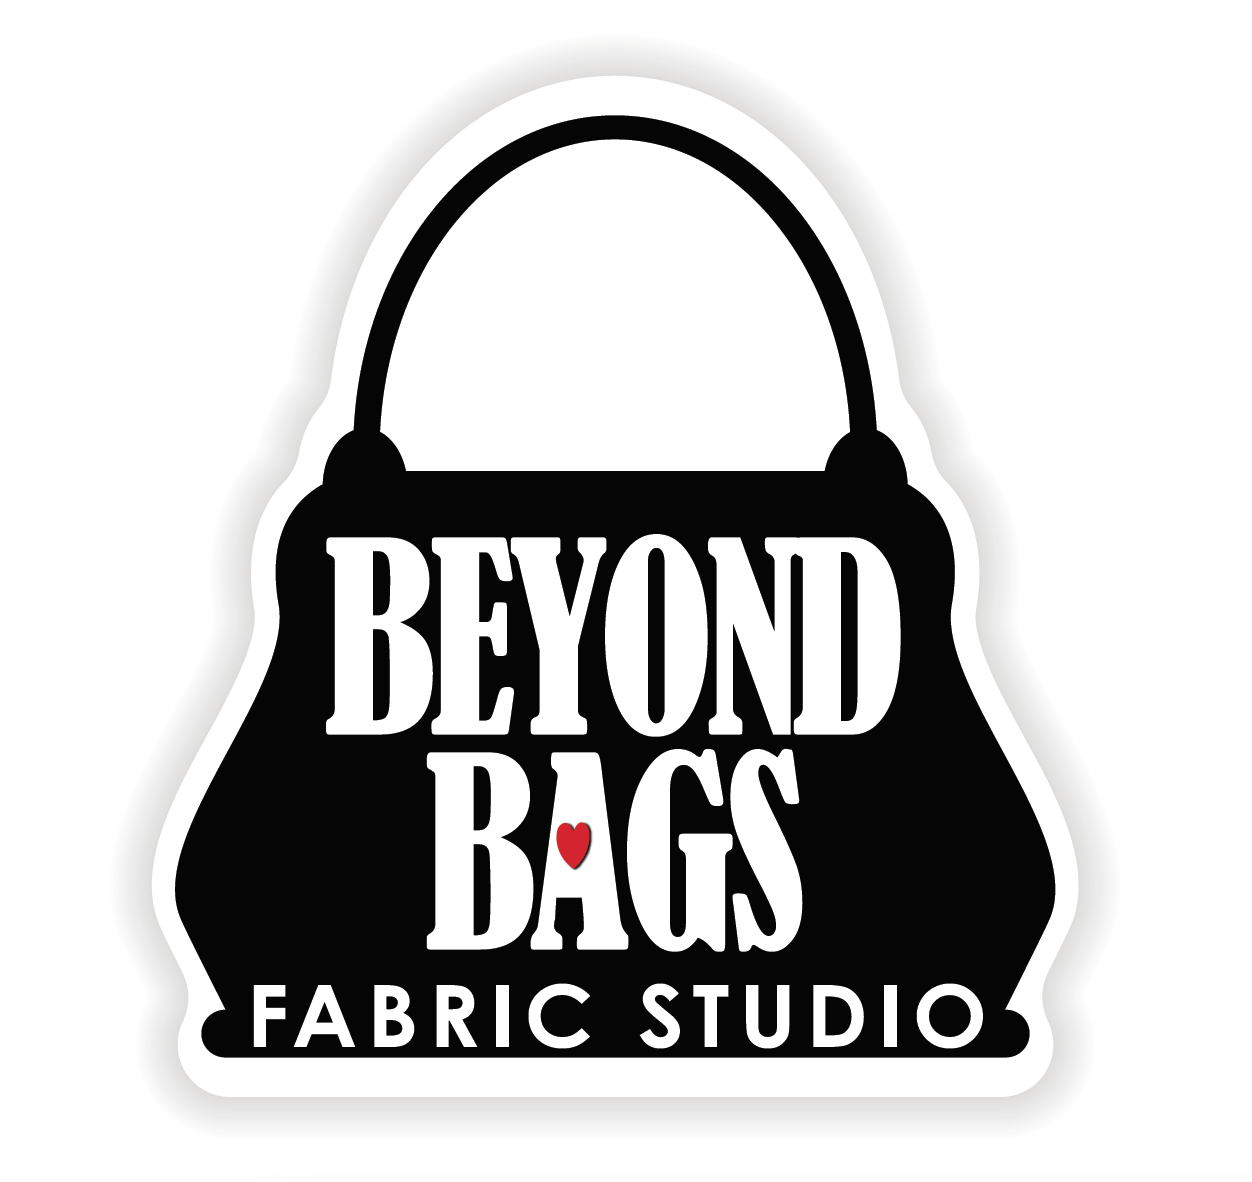 Beyond Bags Fabric Studio